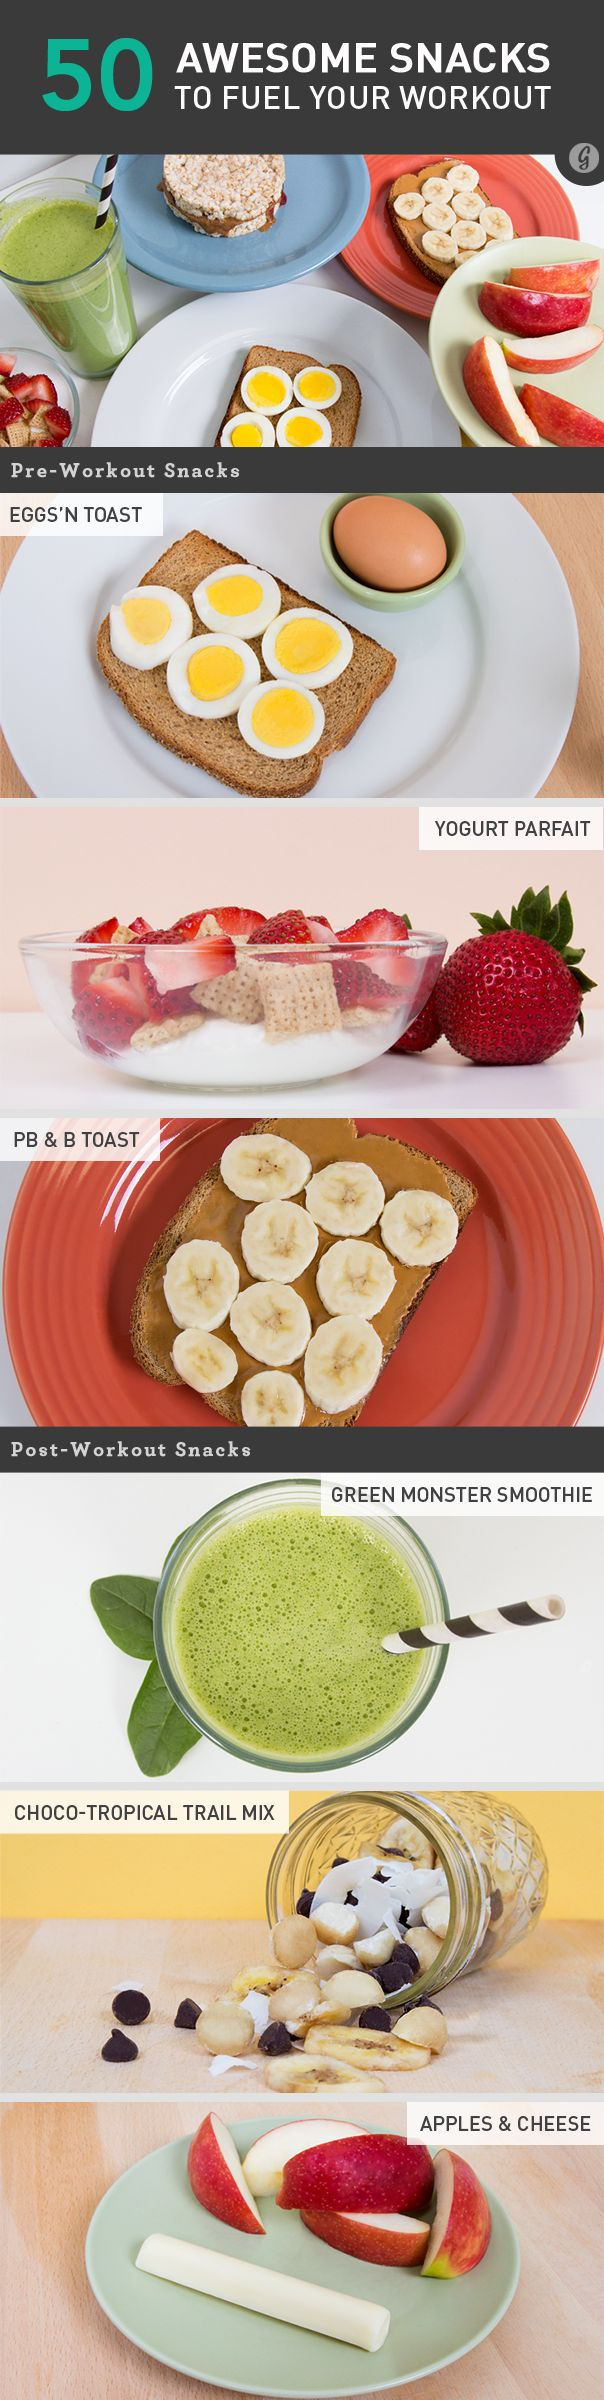 50 Awesome Pre- and Post-Workout Snacks #healthy #snacks #workout